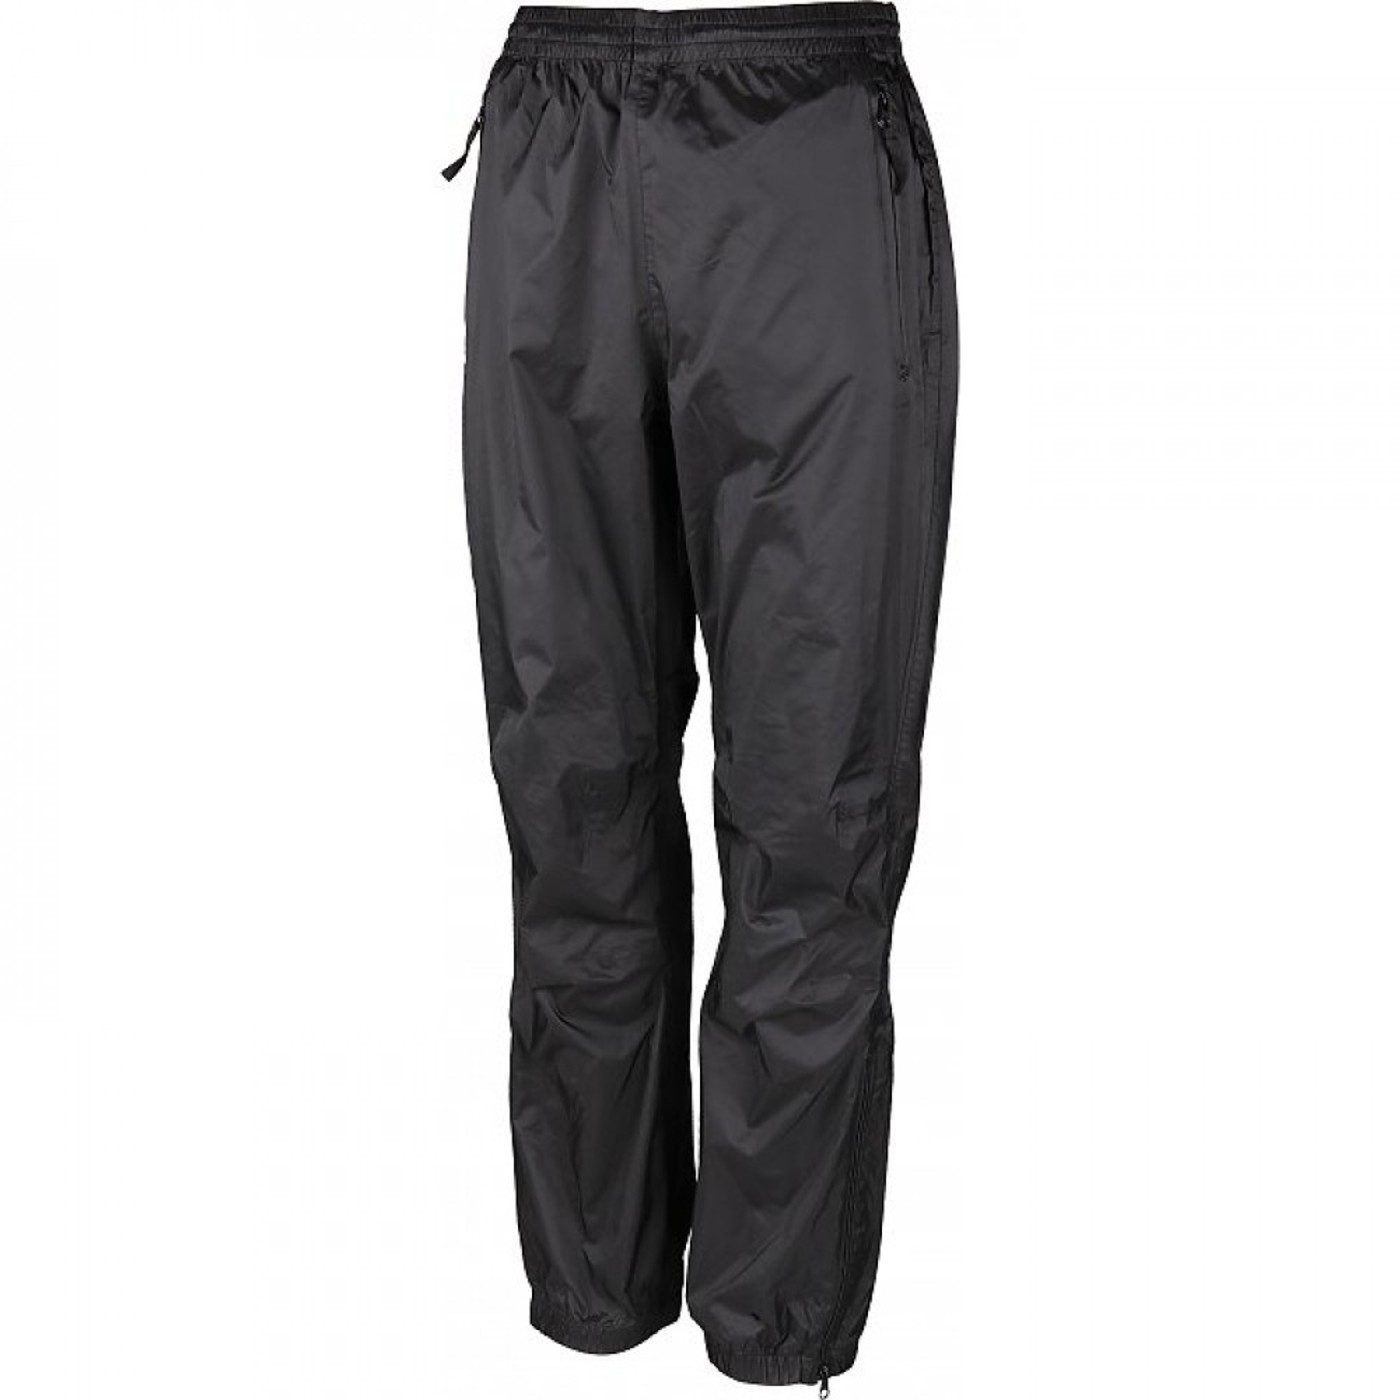 HIGH COLORADO Adults rain pants RAIN 1-A 1/4